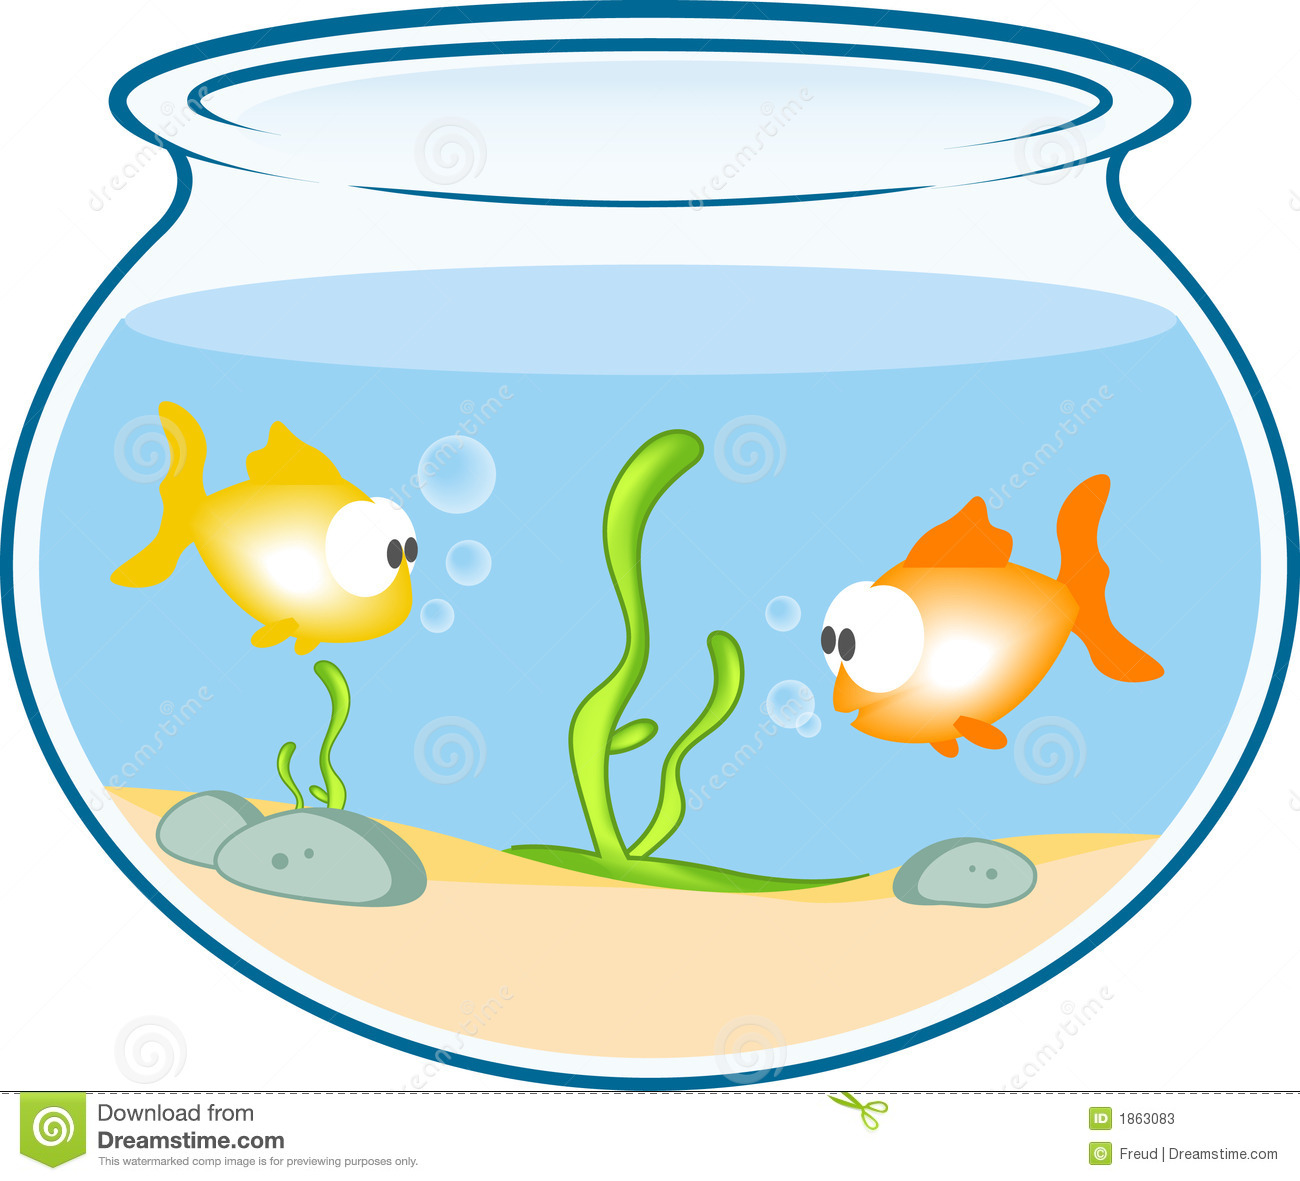 Fish Tank Clipart at GetDrawings.com.